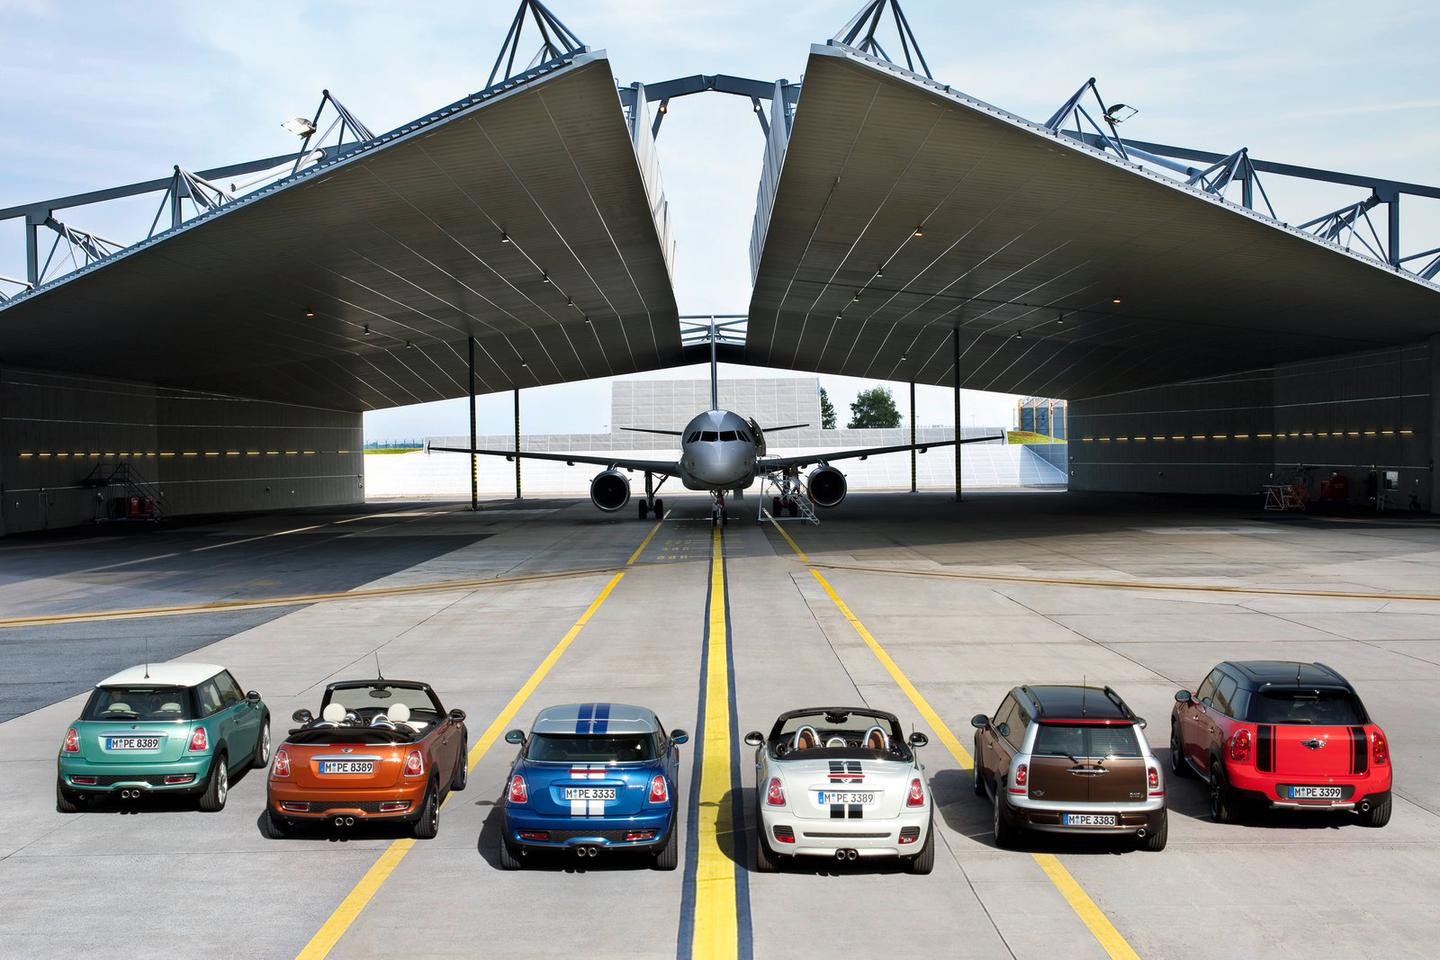 The MINI line up will be six strong in 2012